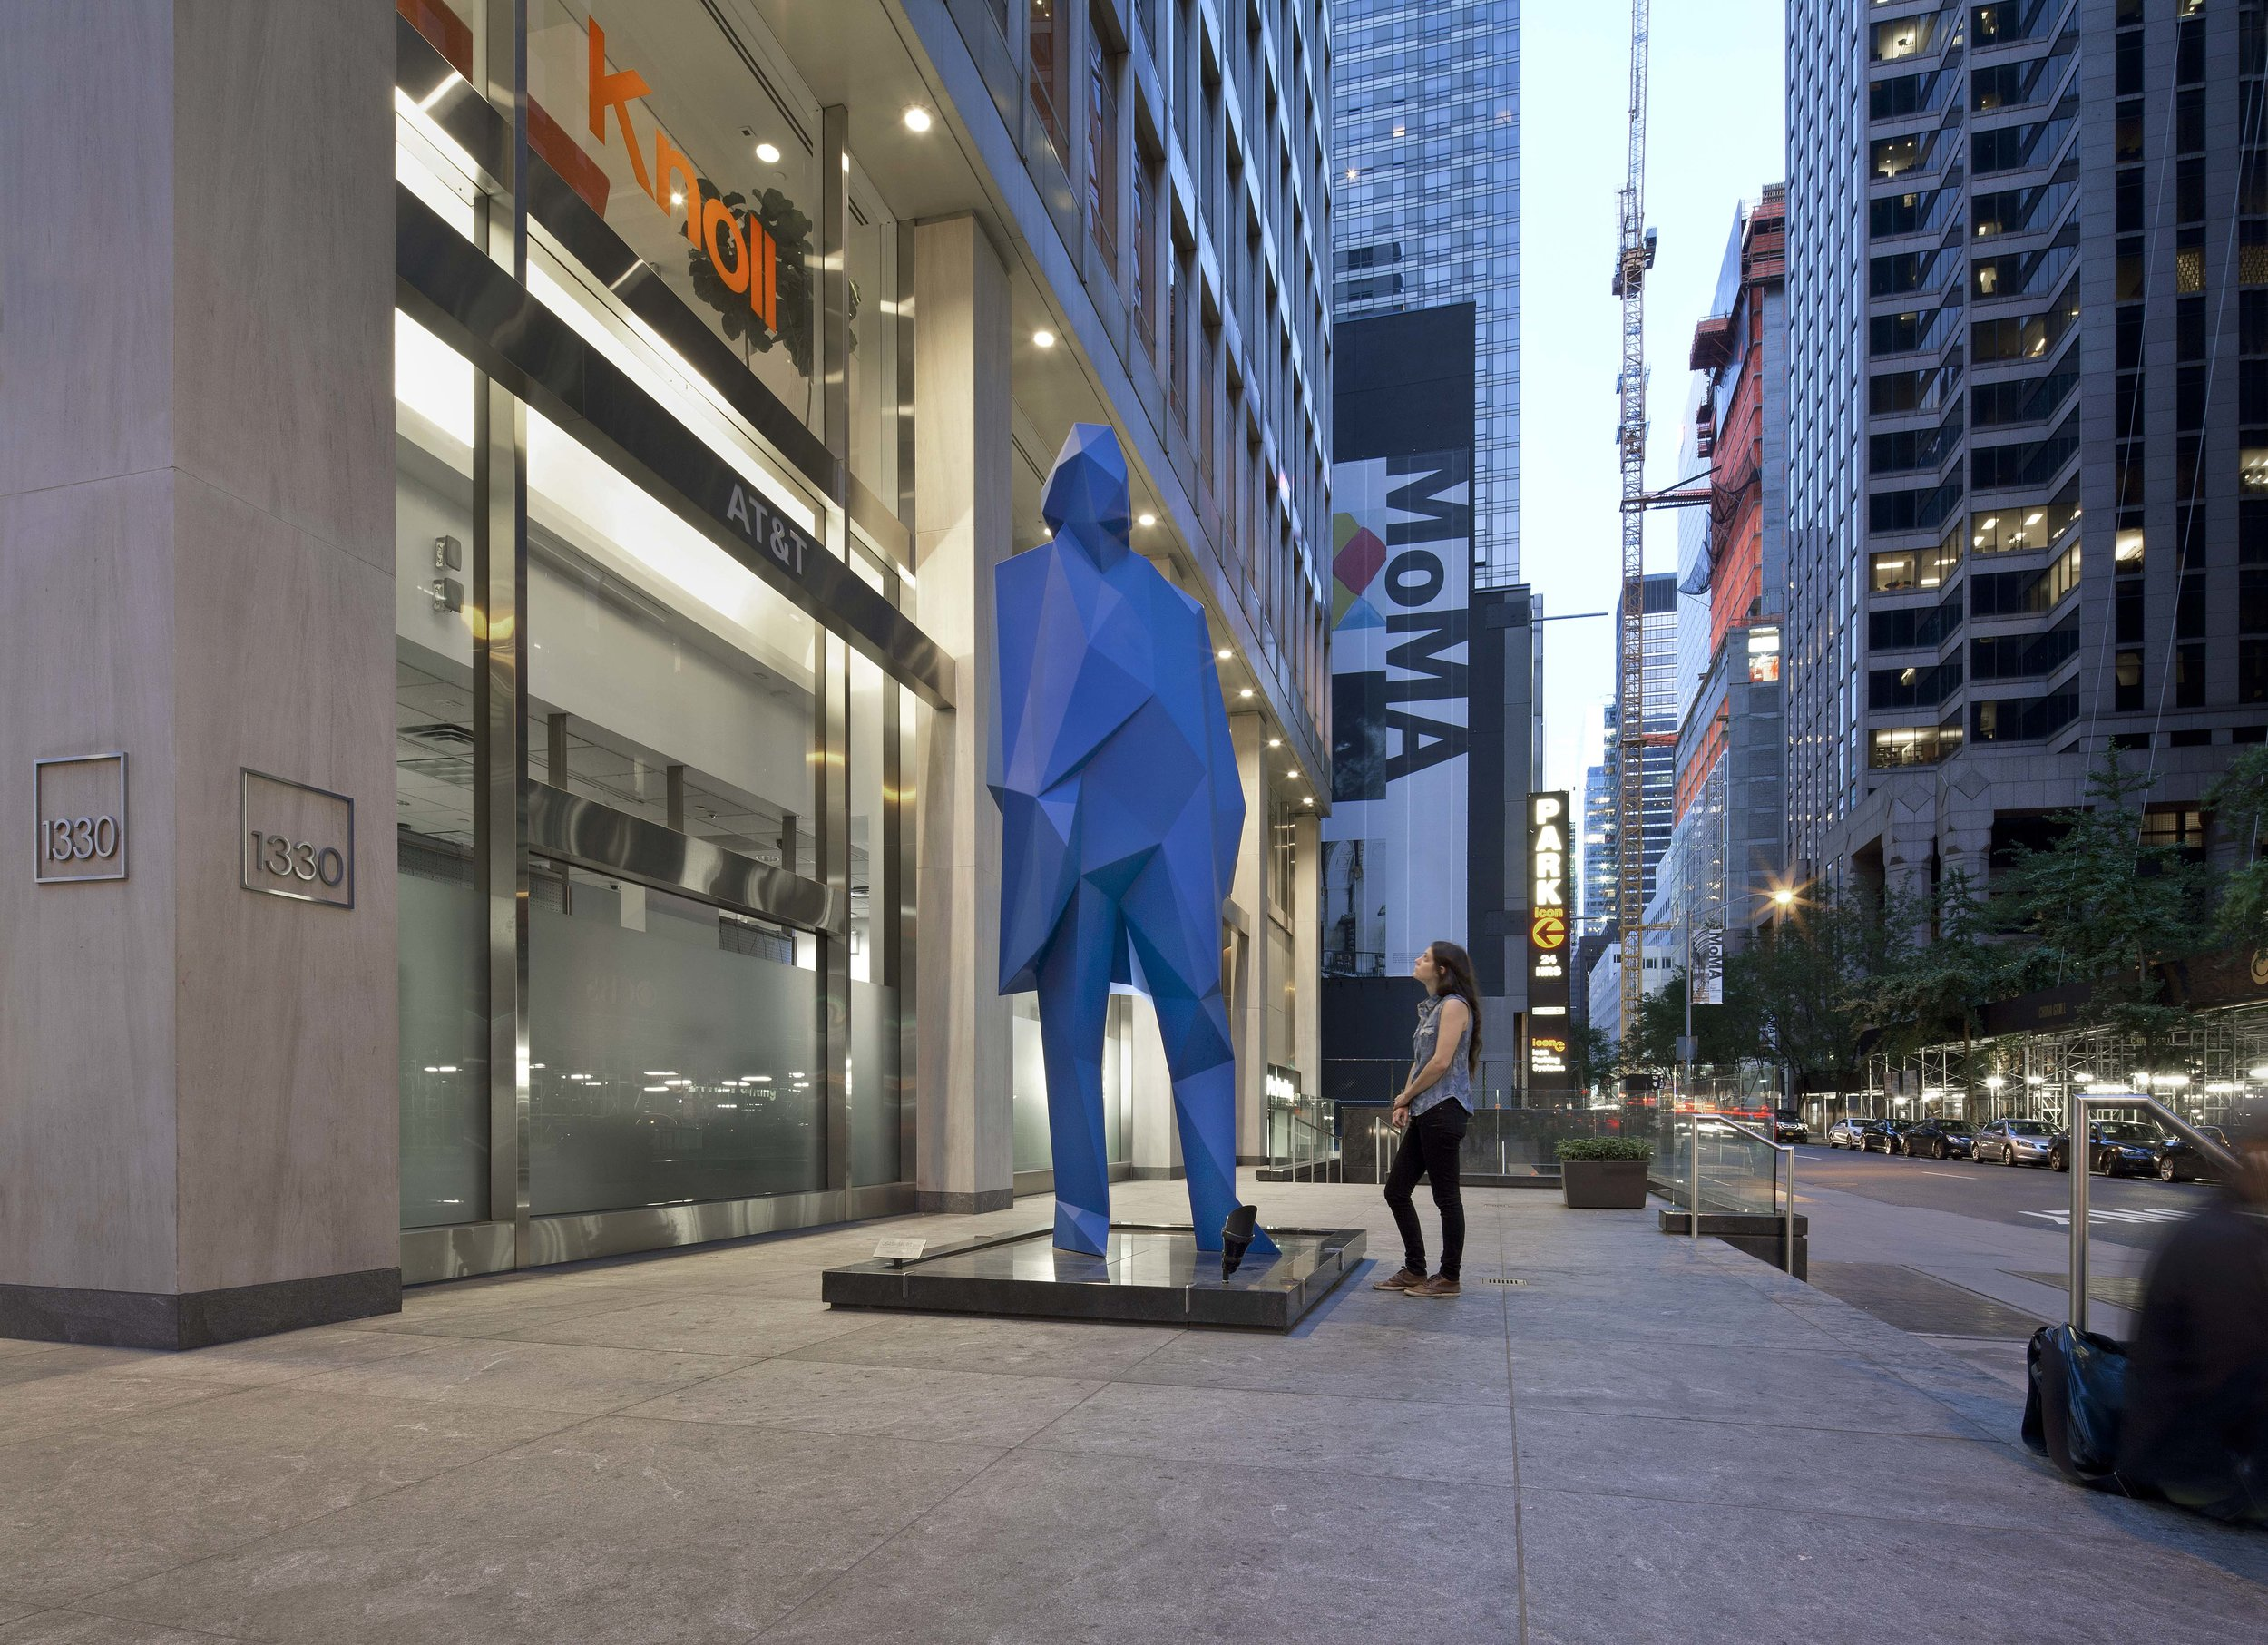 1330 Avenue of the Americas | Xavier Veilhan